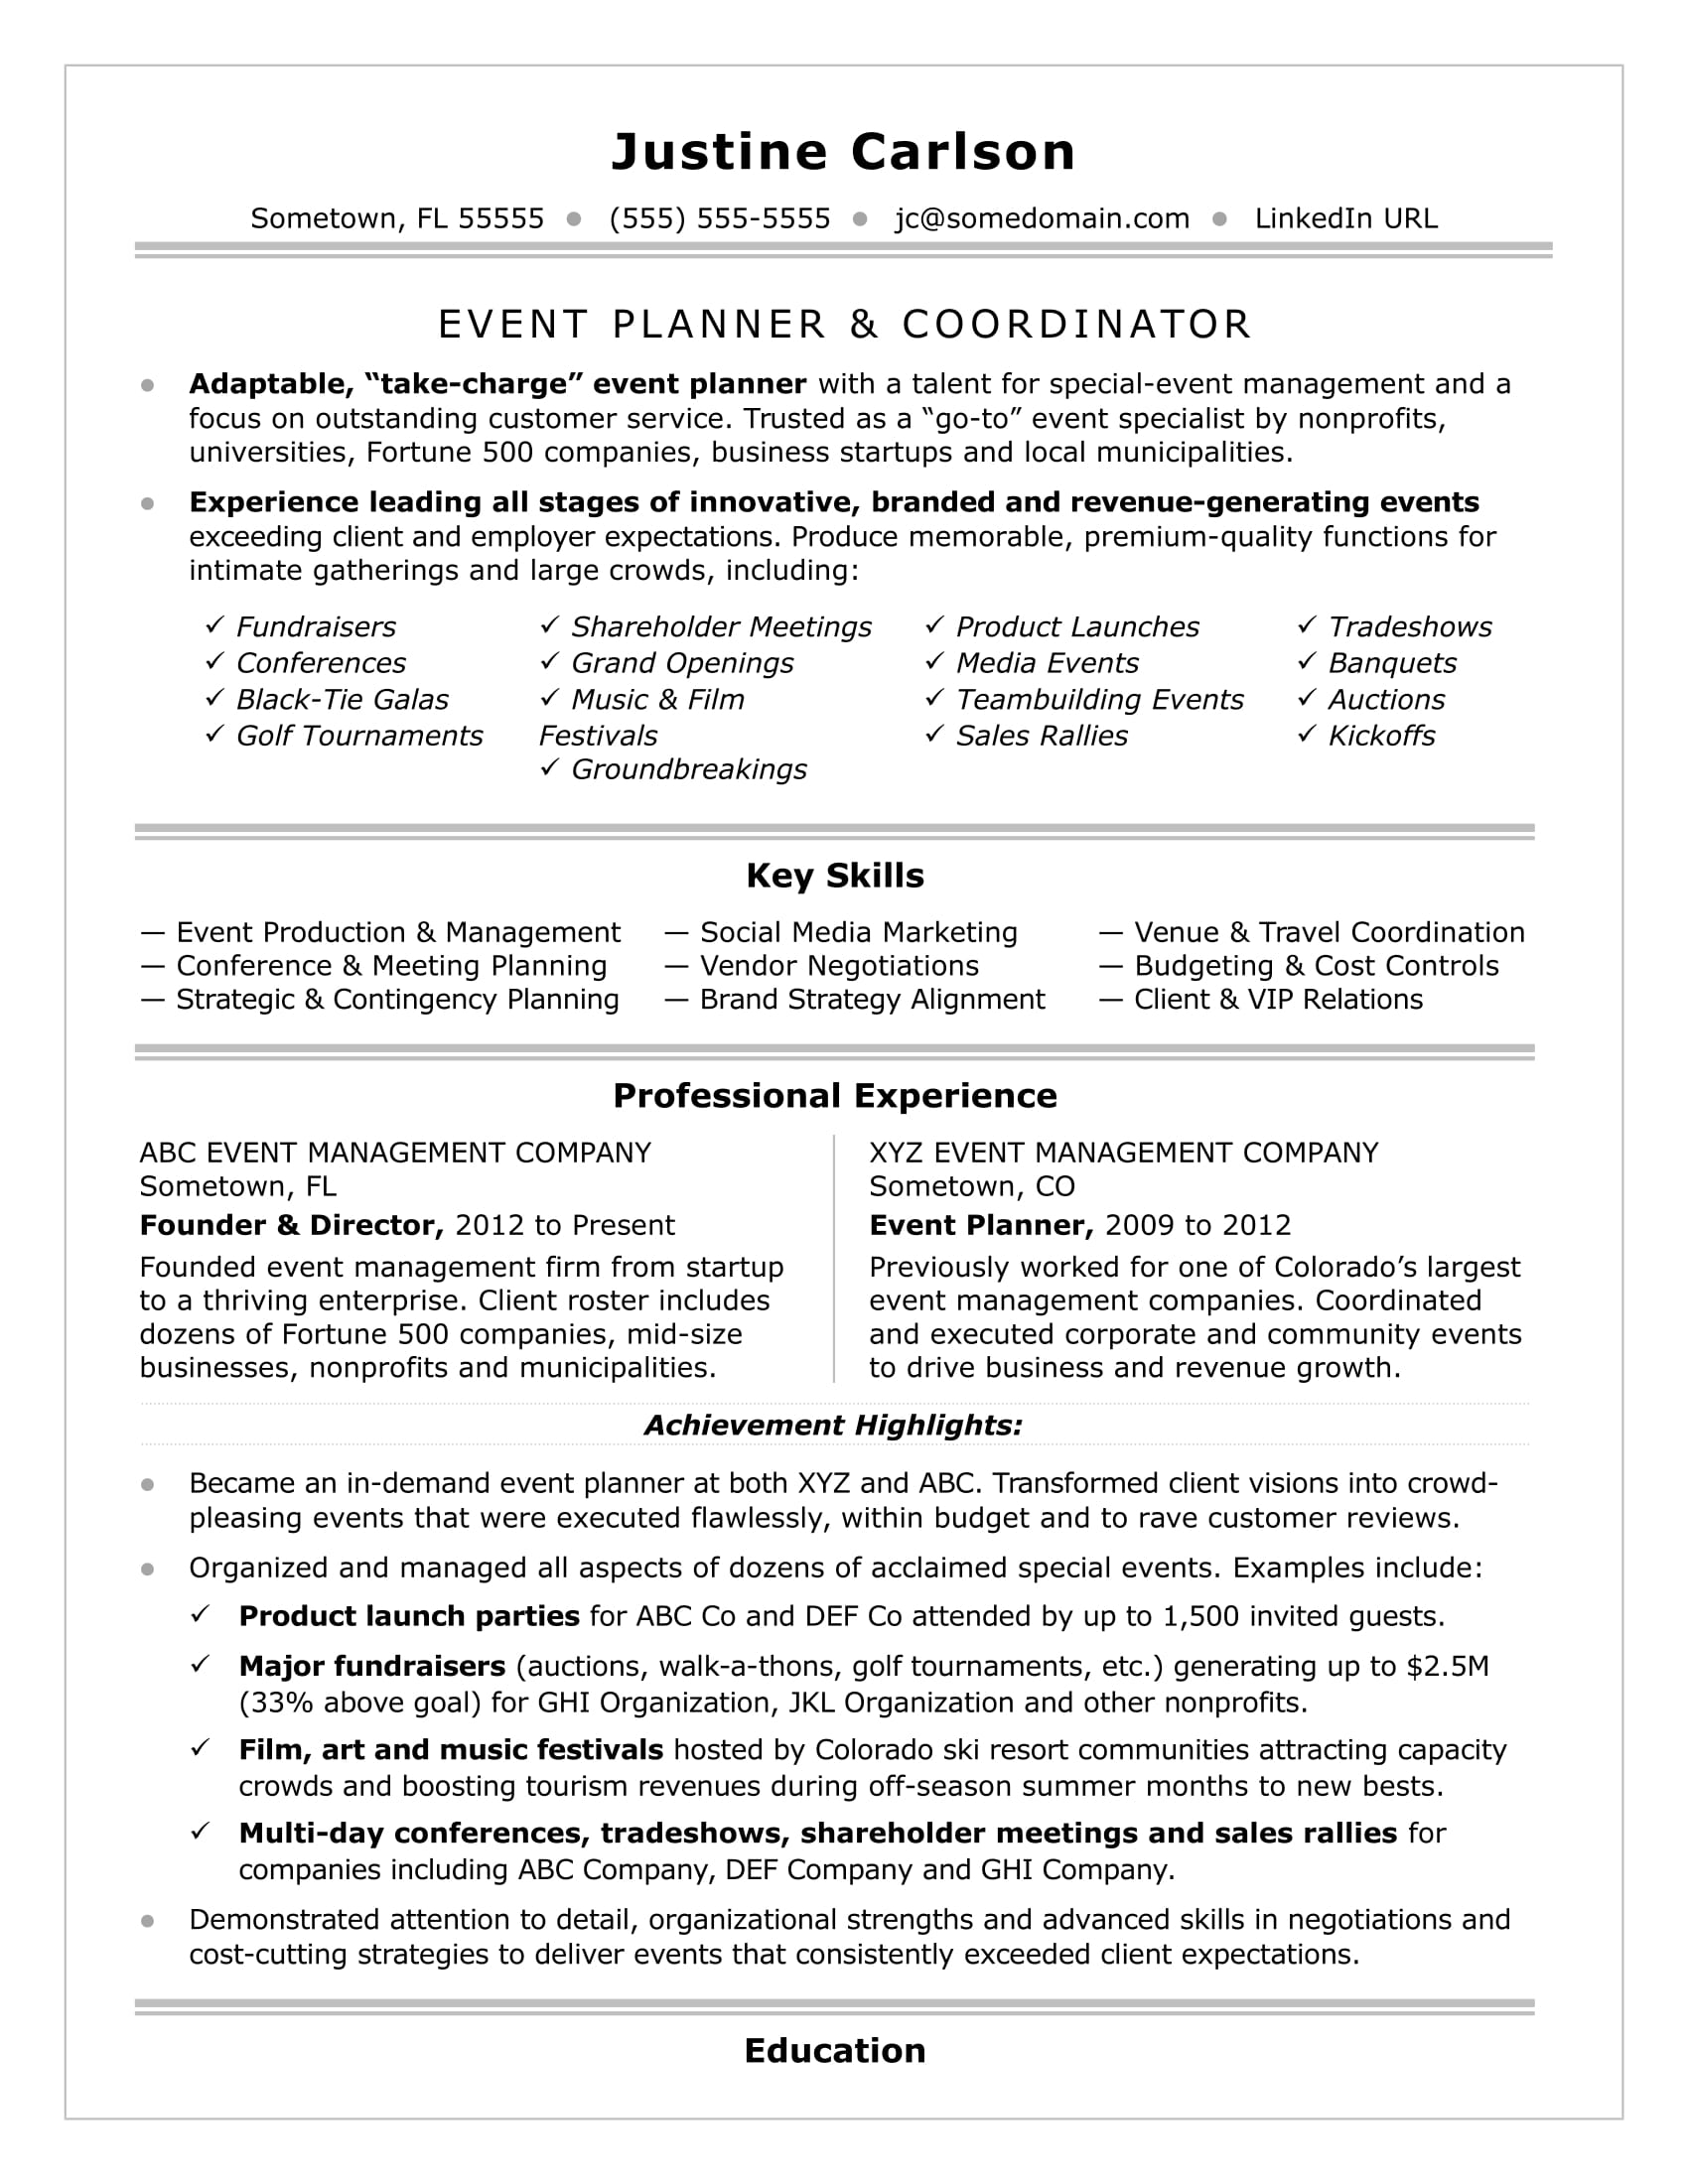 Superior Event Coordinator Resume Sample With Resume For Event Coordinator